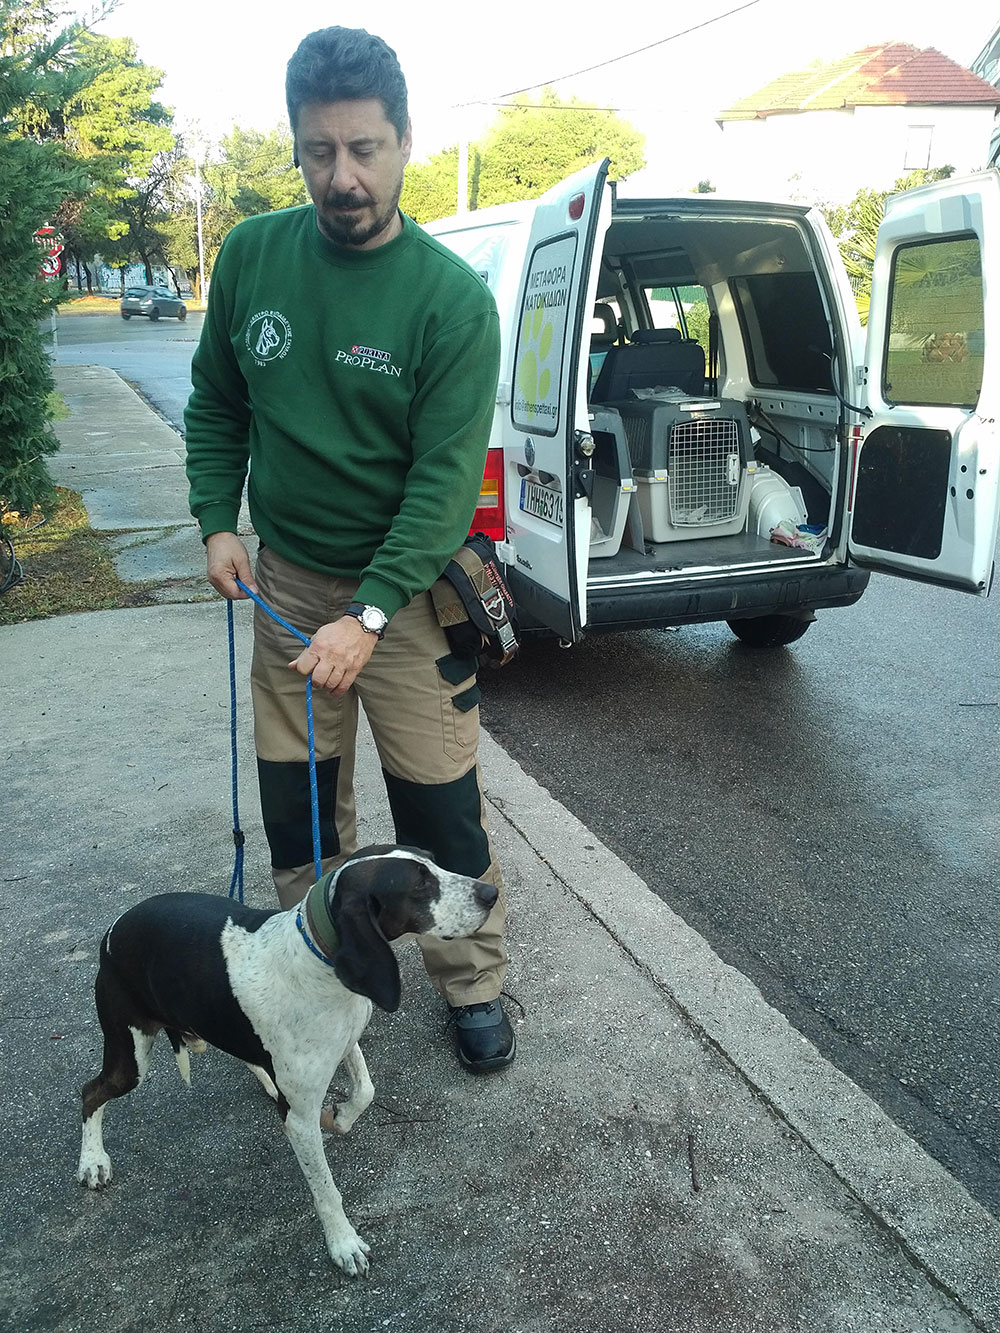 Our friendly, helpful pet taxi driver Akis, with Wilson